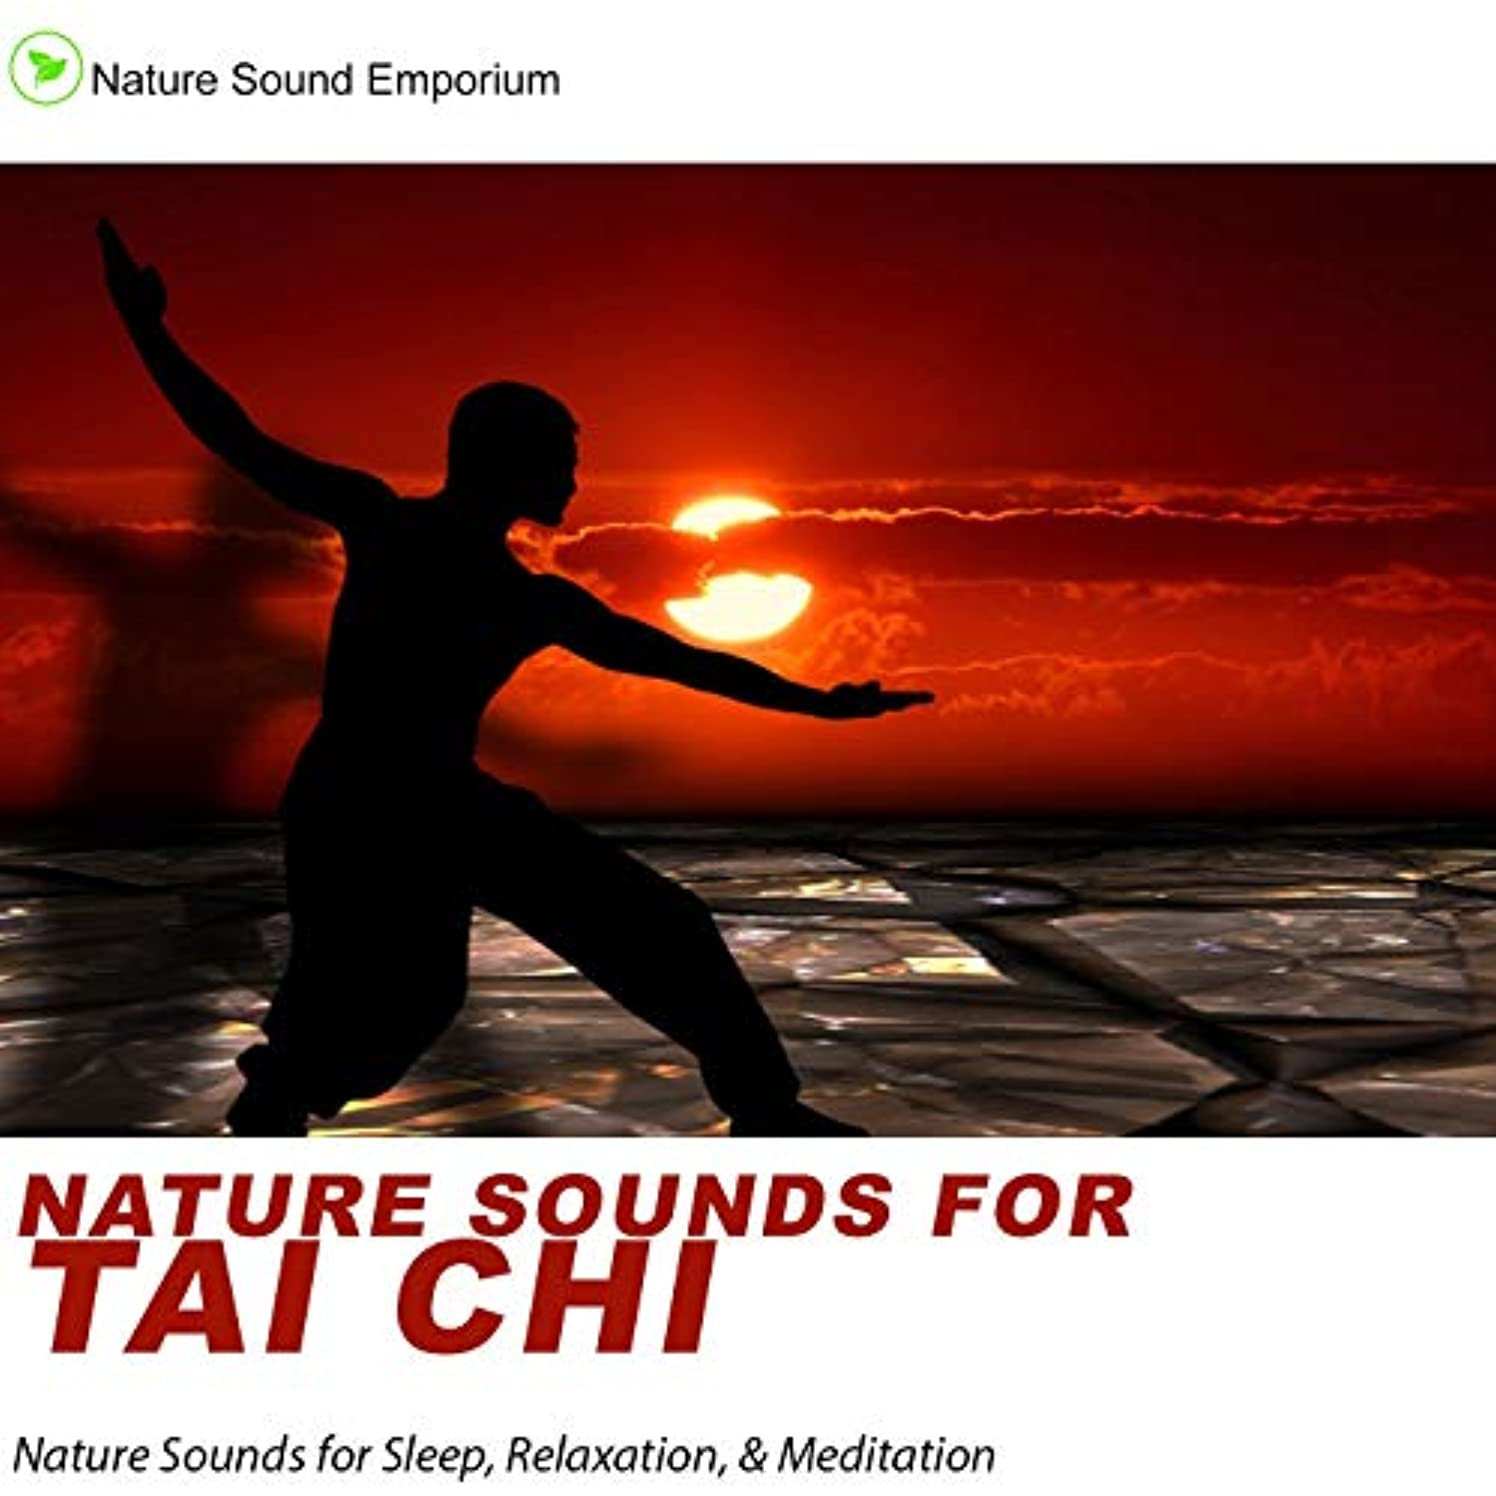 Nature Sounds For Tai Chi --  Nature Sounds for Relaxation, Meditation, Healing & Deep Sleep